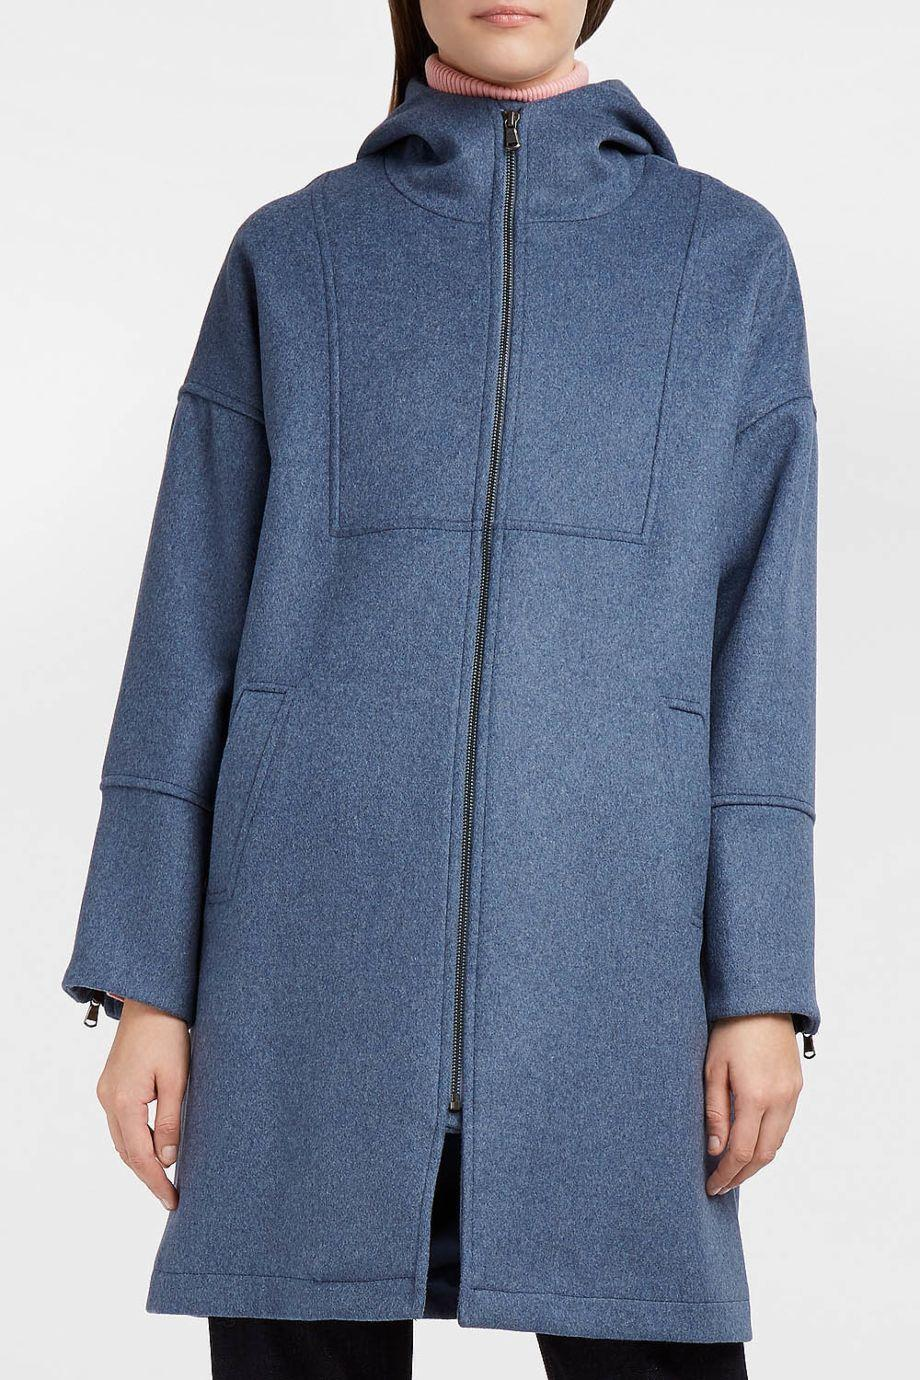 Paul & Joe Sister Bigbang Wool-Blend Felt Coat